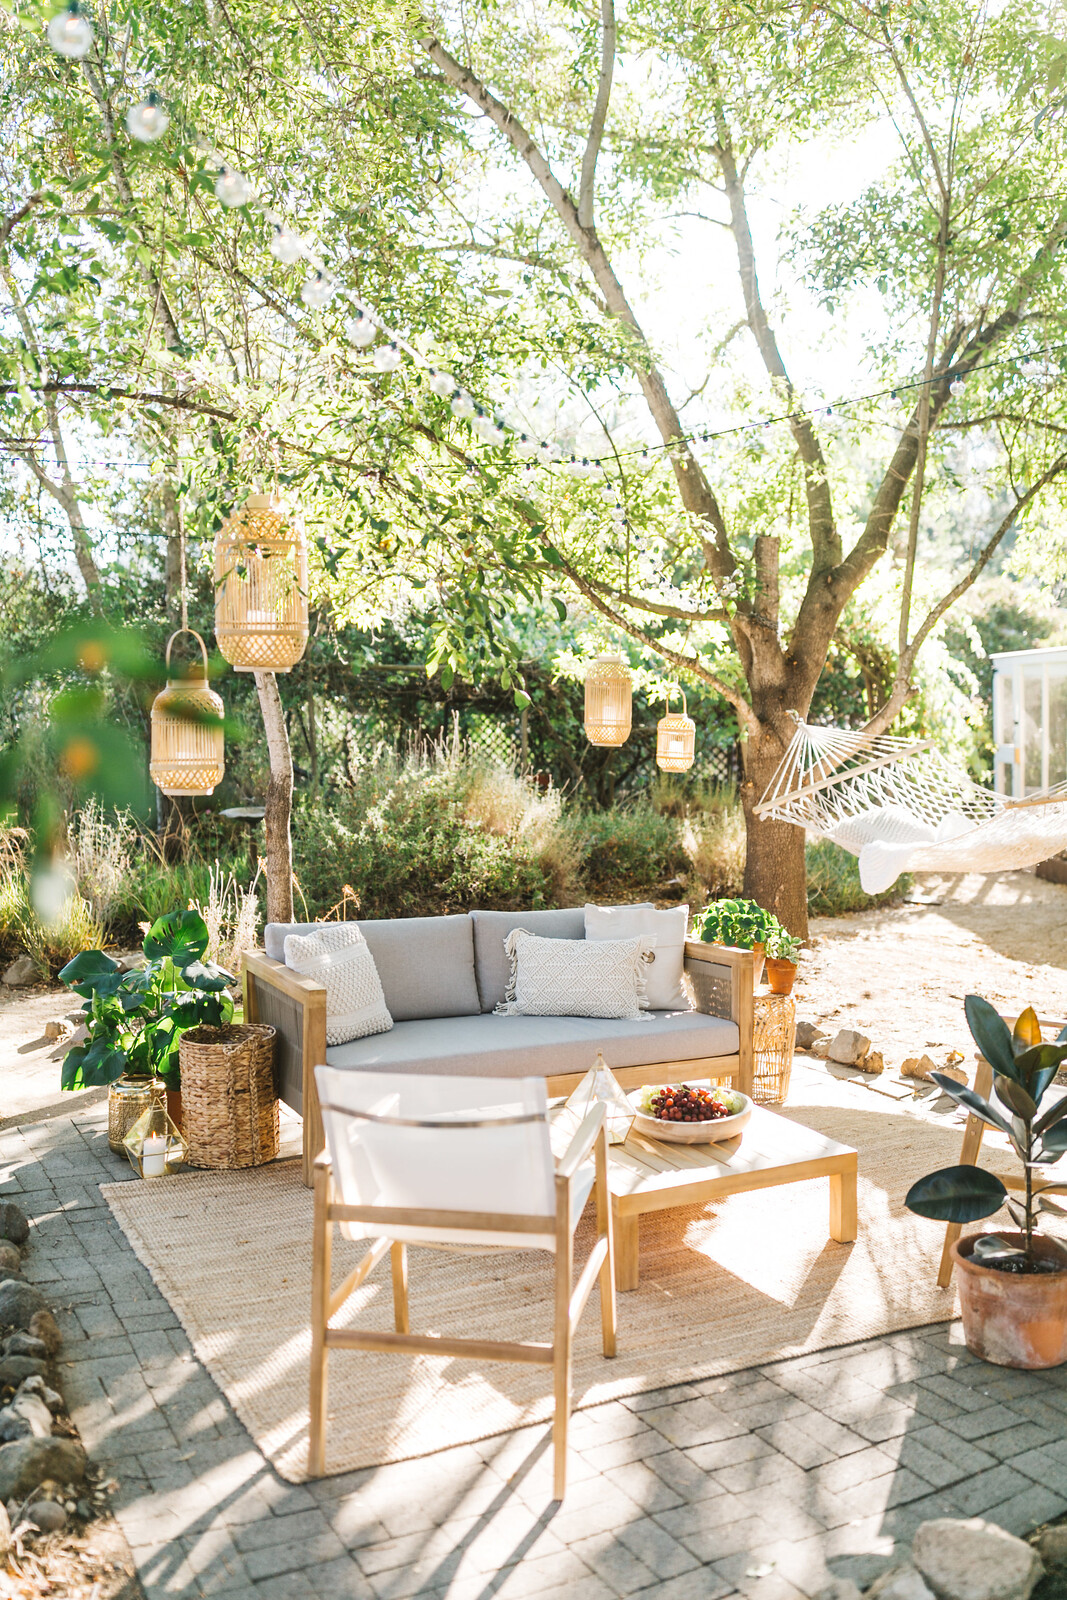 5 Tips for Creating a Cozy Outdoor Oasis at Your Home